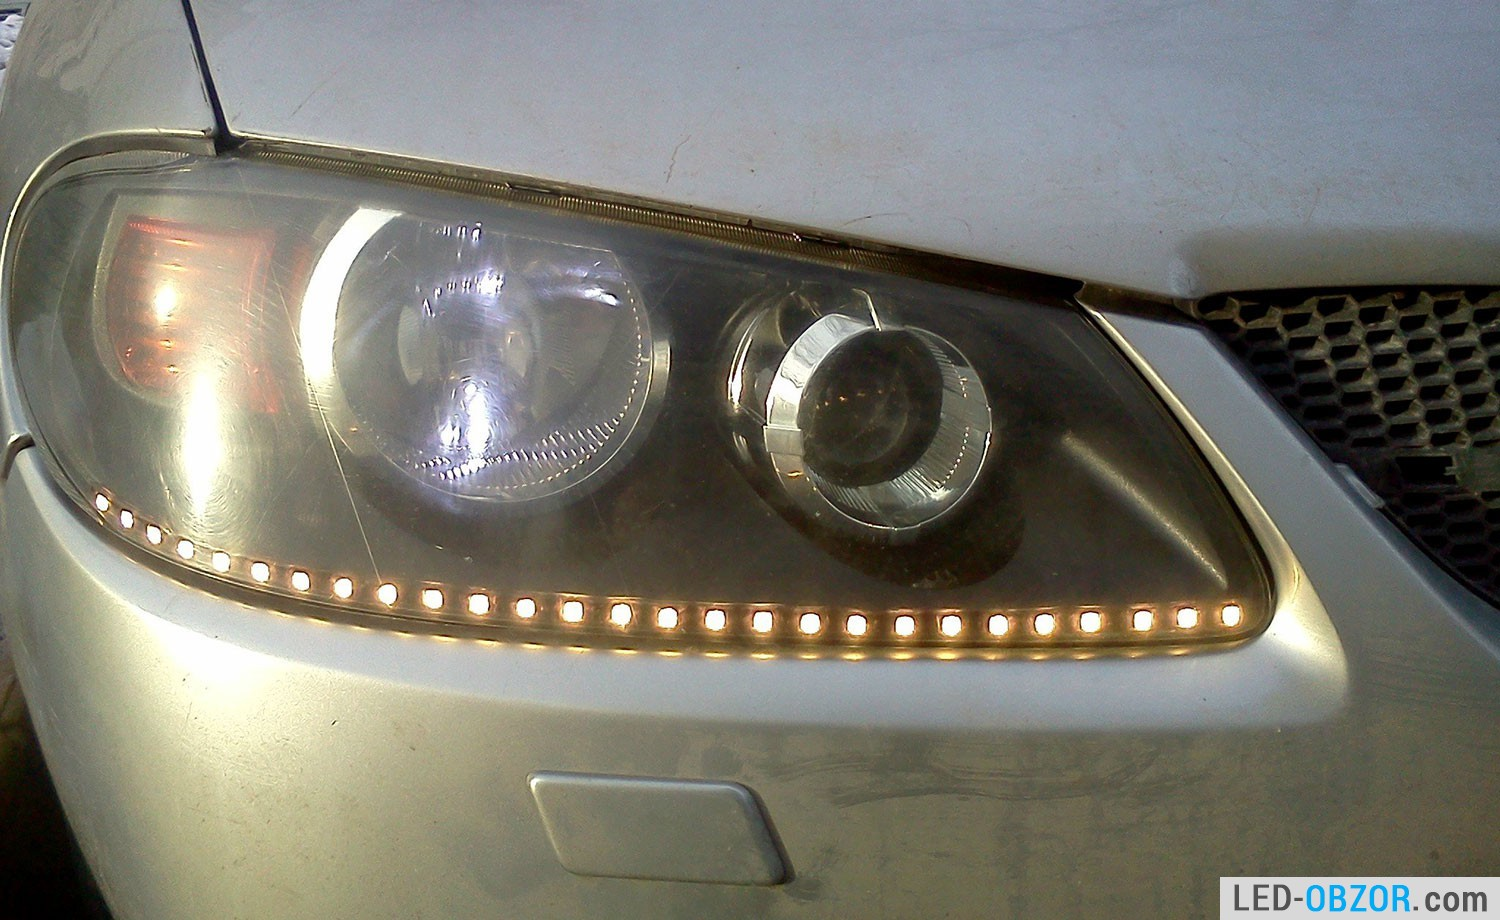 hight resolution of installing led strip lights is not easy but you will be completely satisfied with the result insert in the rear light is not any difficulties